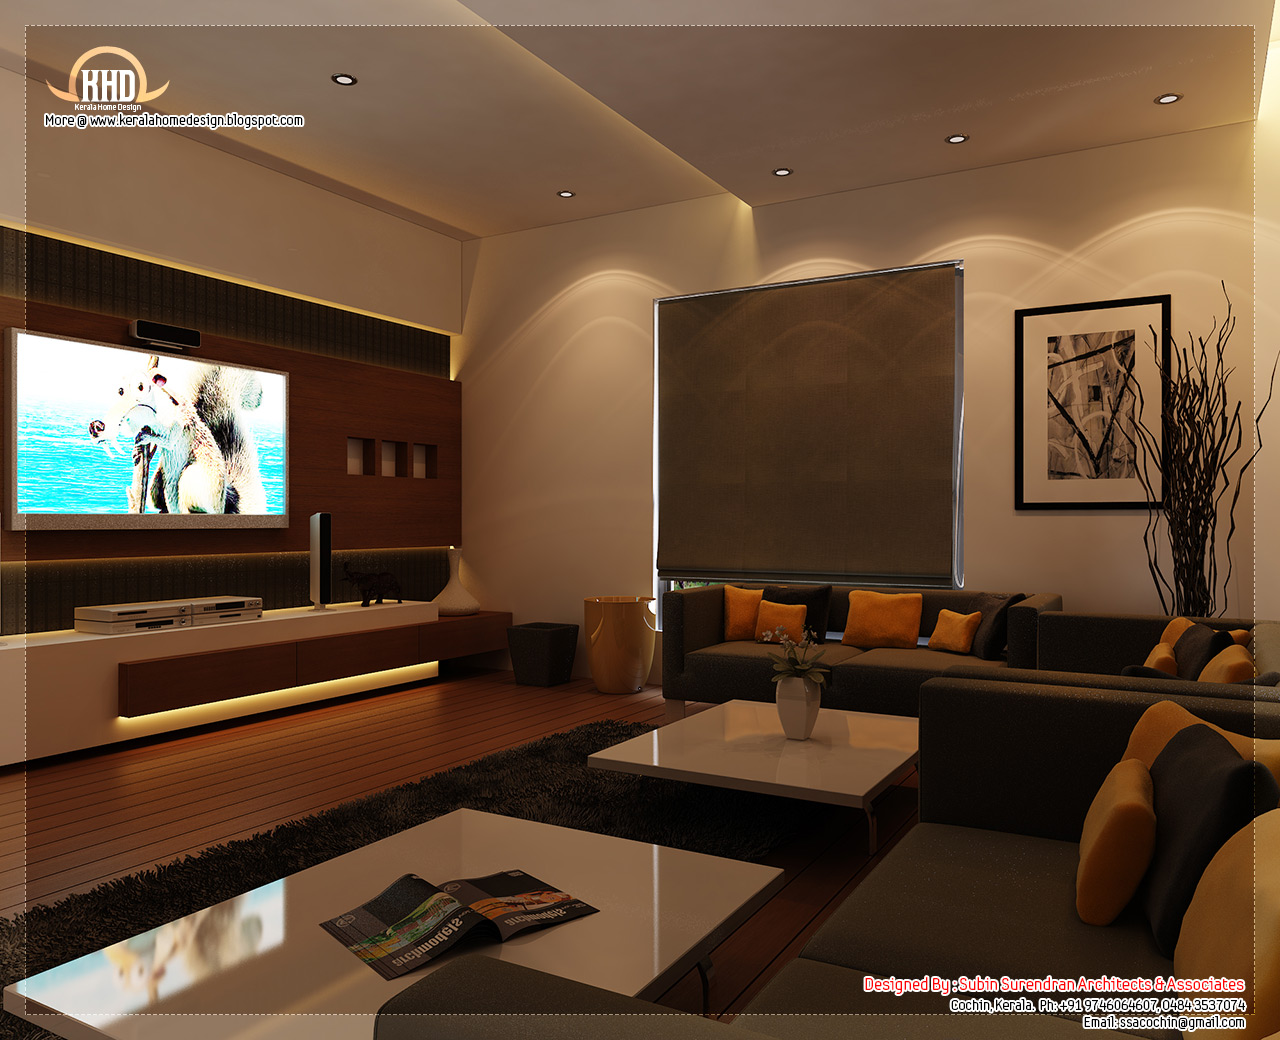 Beautiful home interior designs kerala home for Kerala home interior designs photos